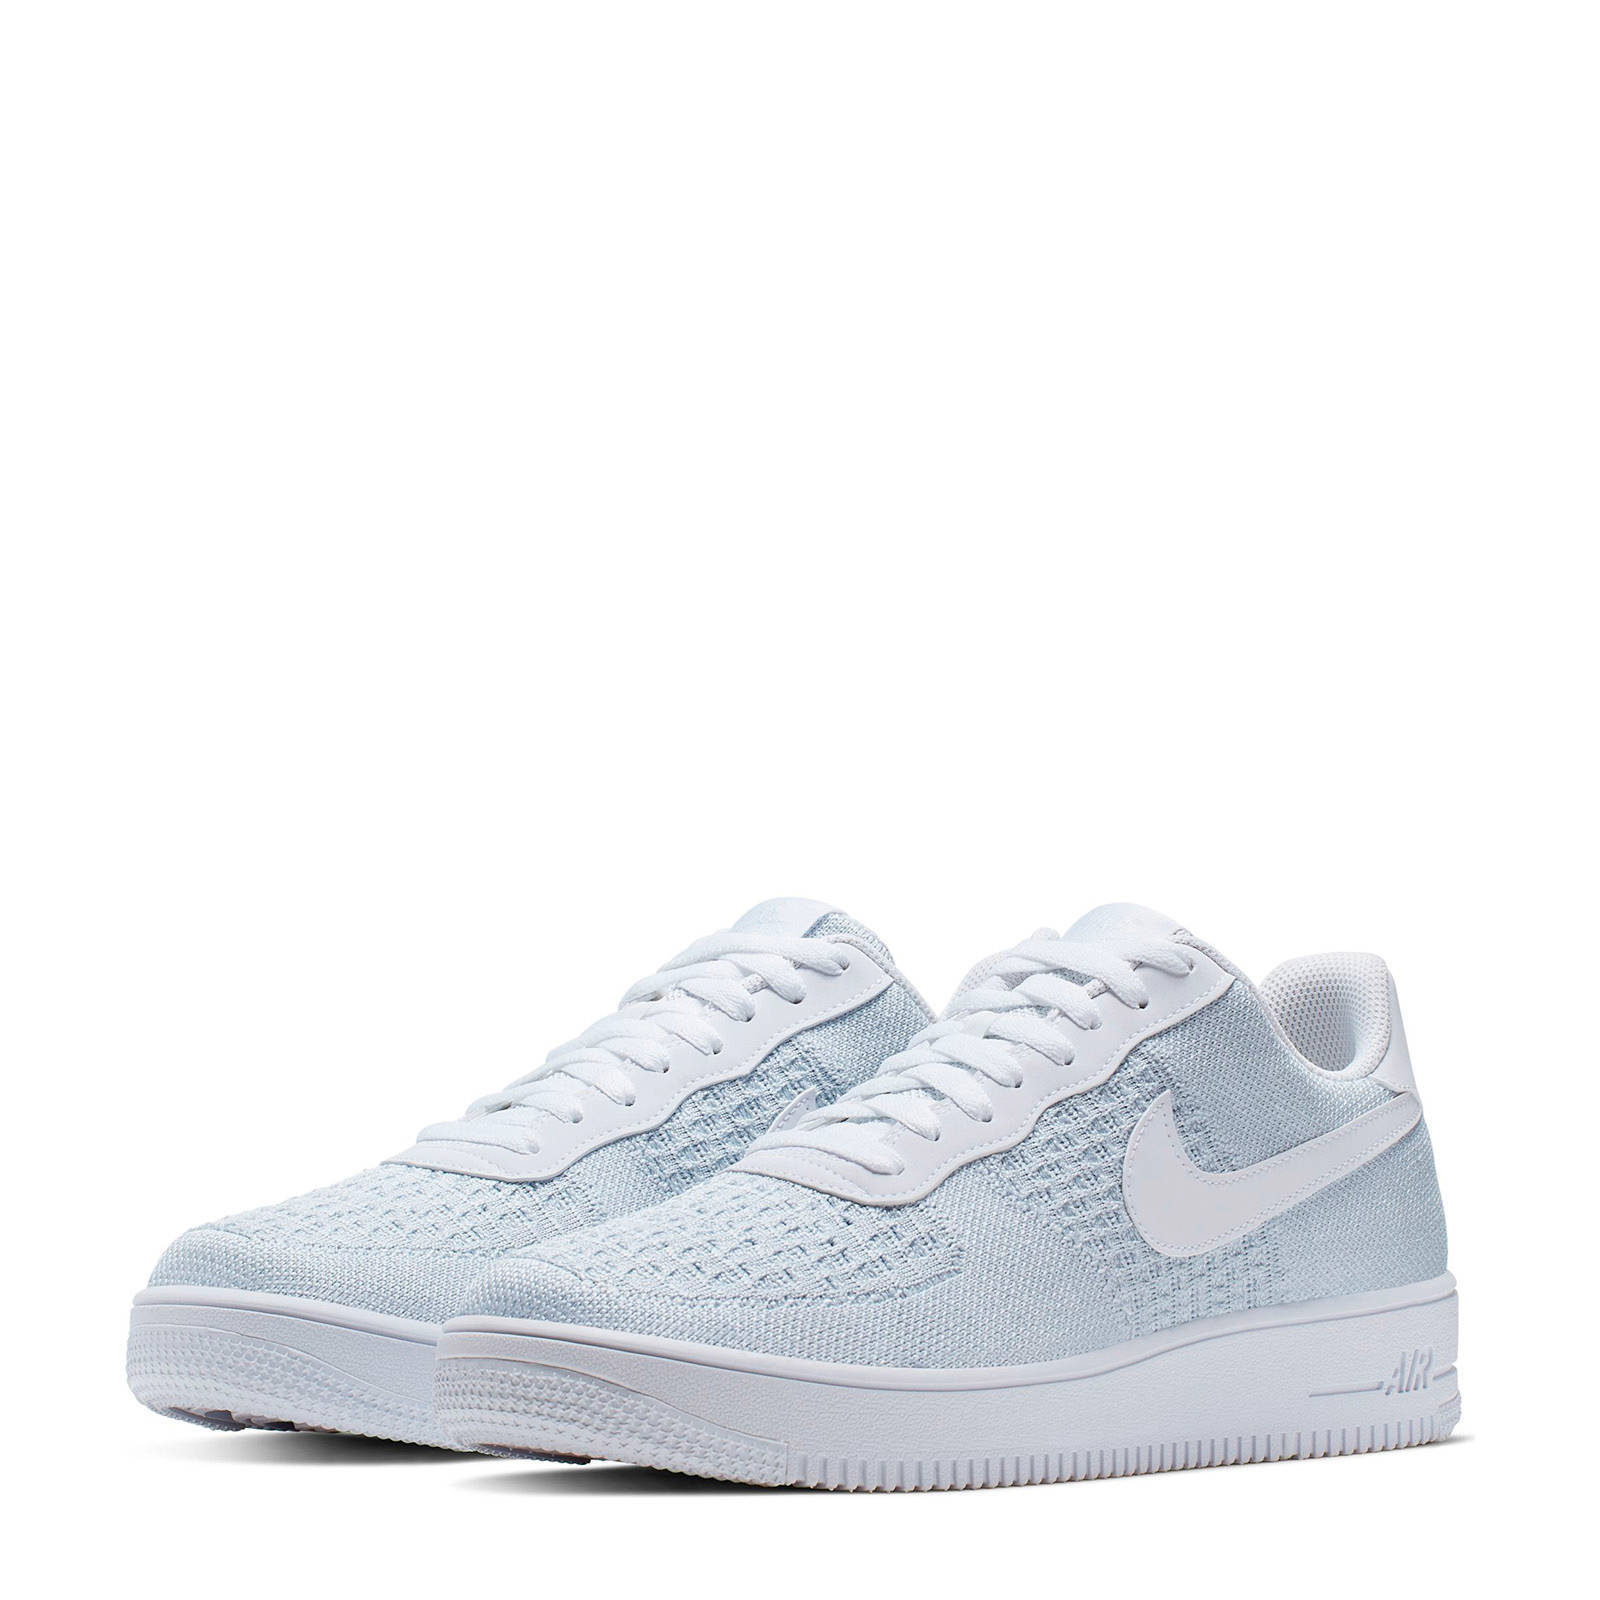 Nike Air Force 1 Flyknit 2.0 sneakers wit | wehkamp